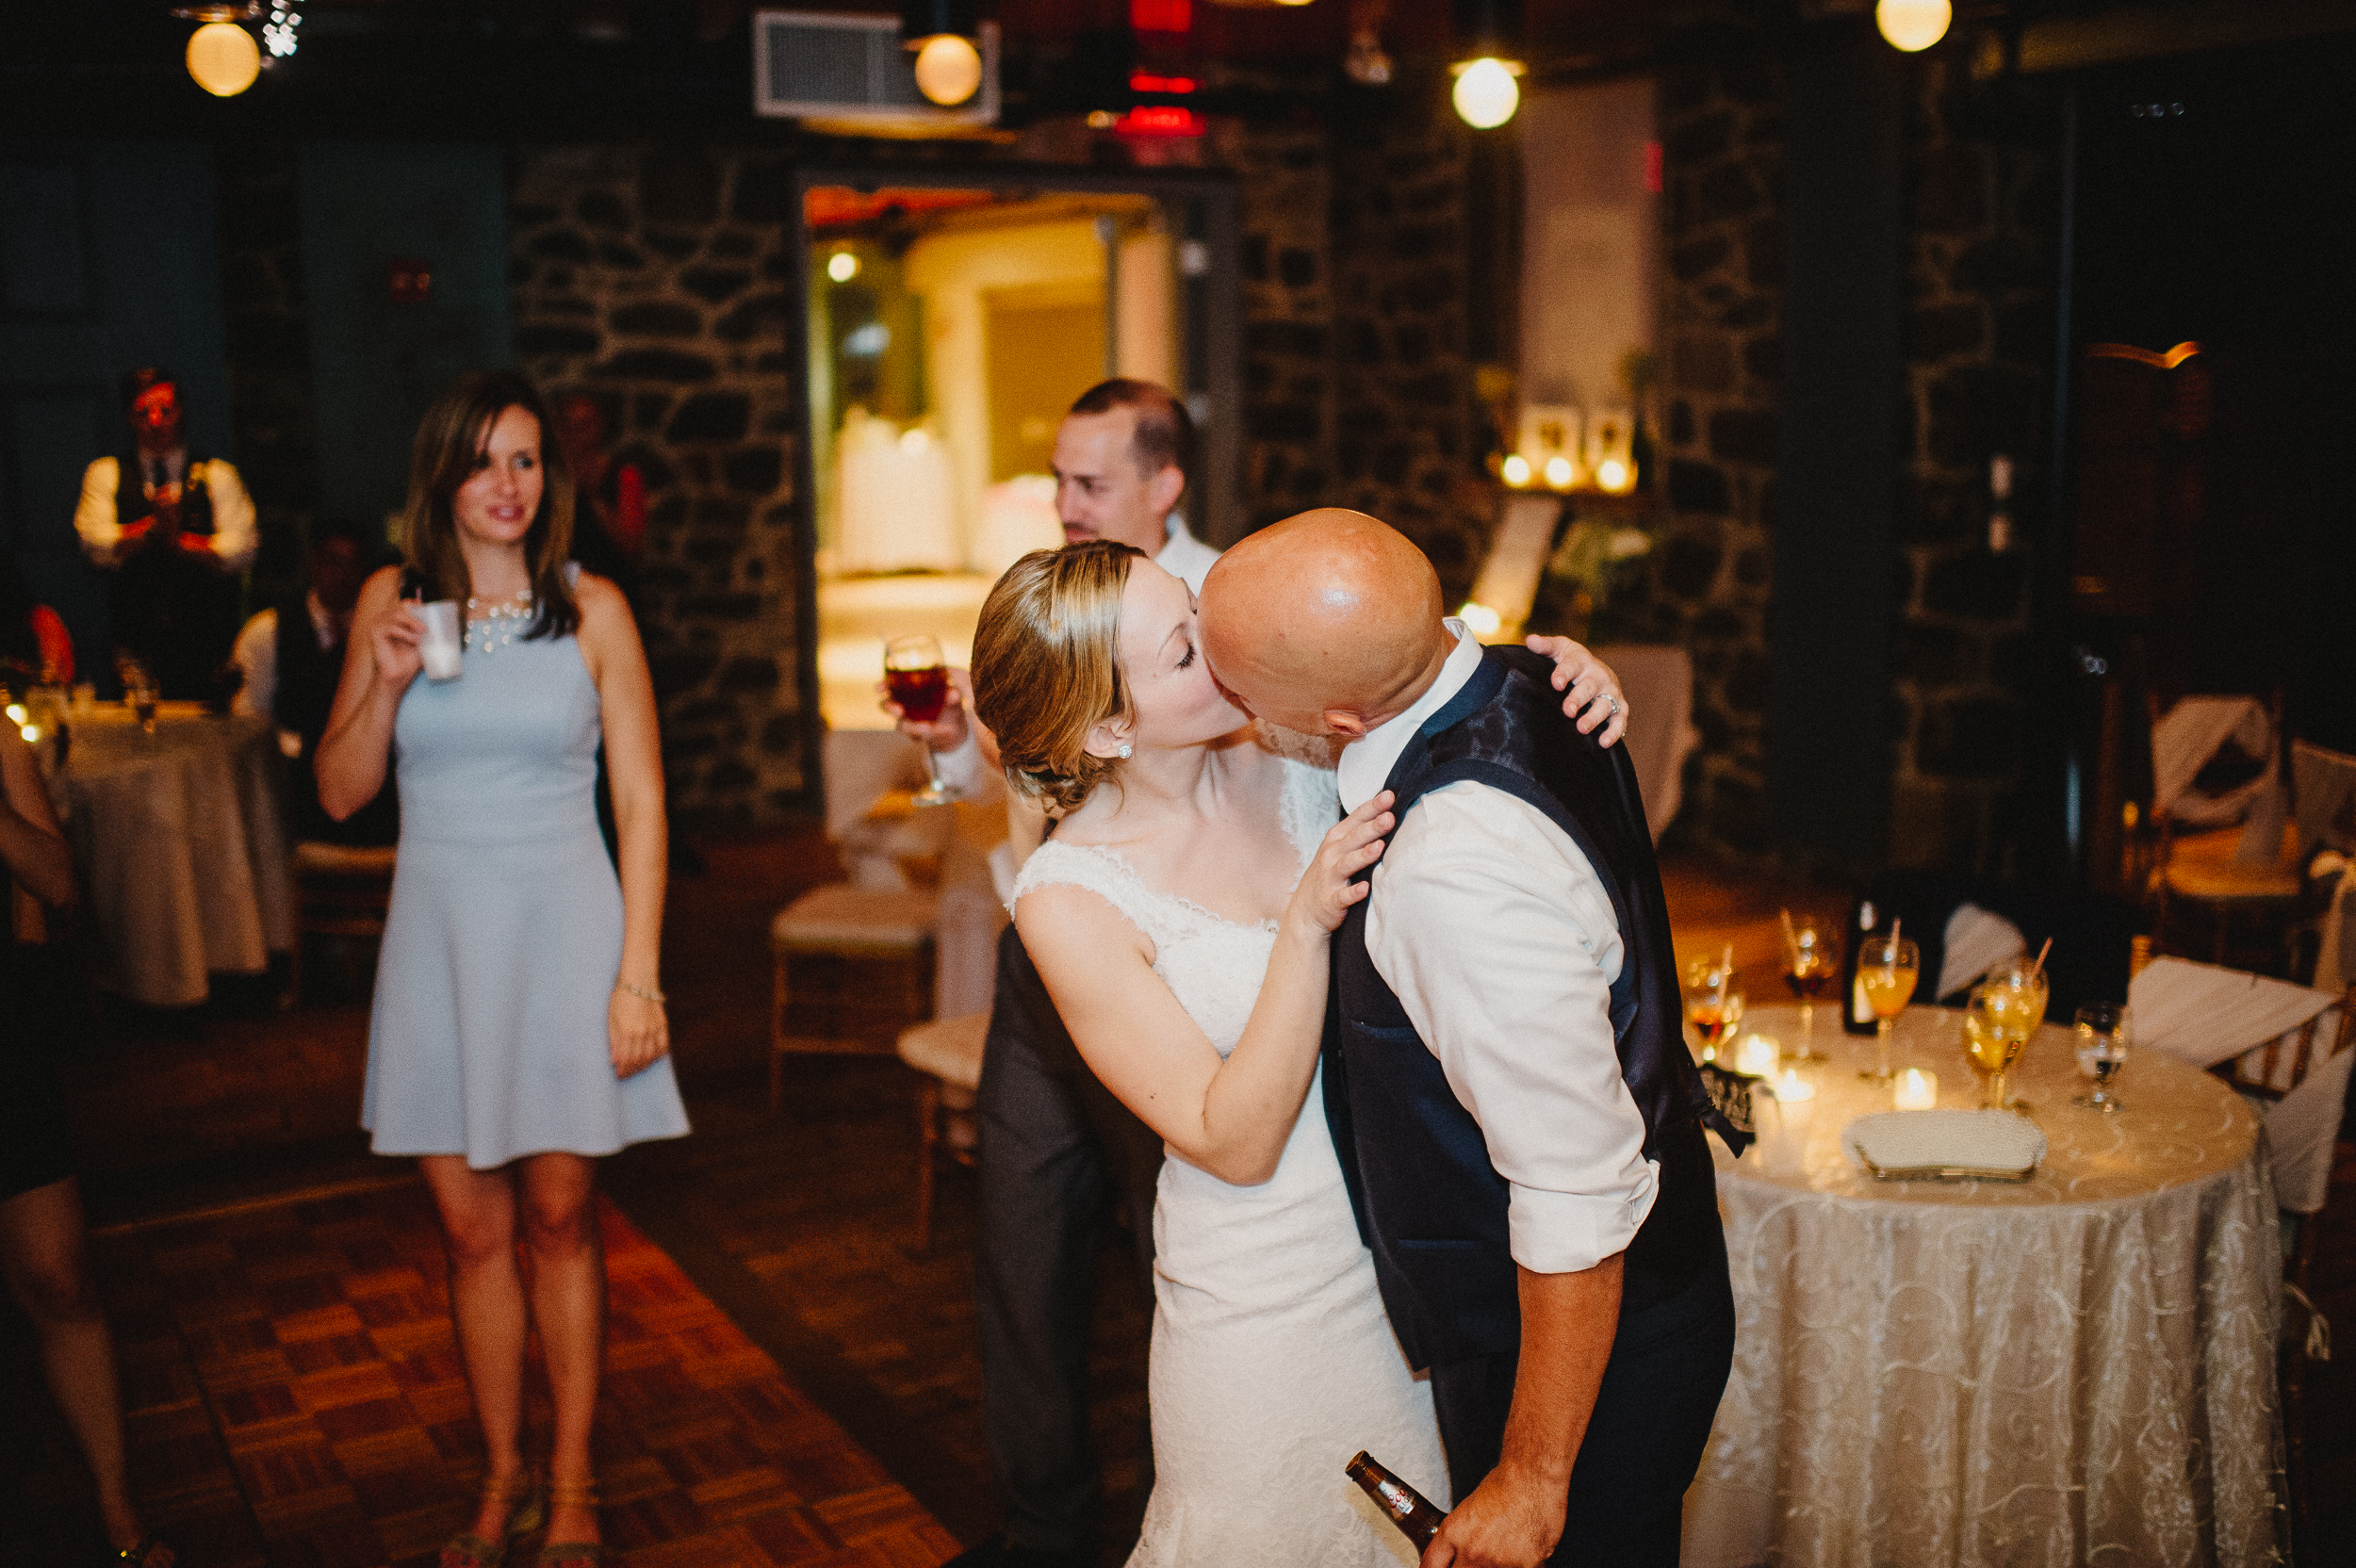 pat-robinson-photography-rockwood-carriage-house-wedding-photographer-89.jpg